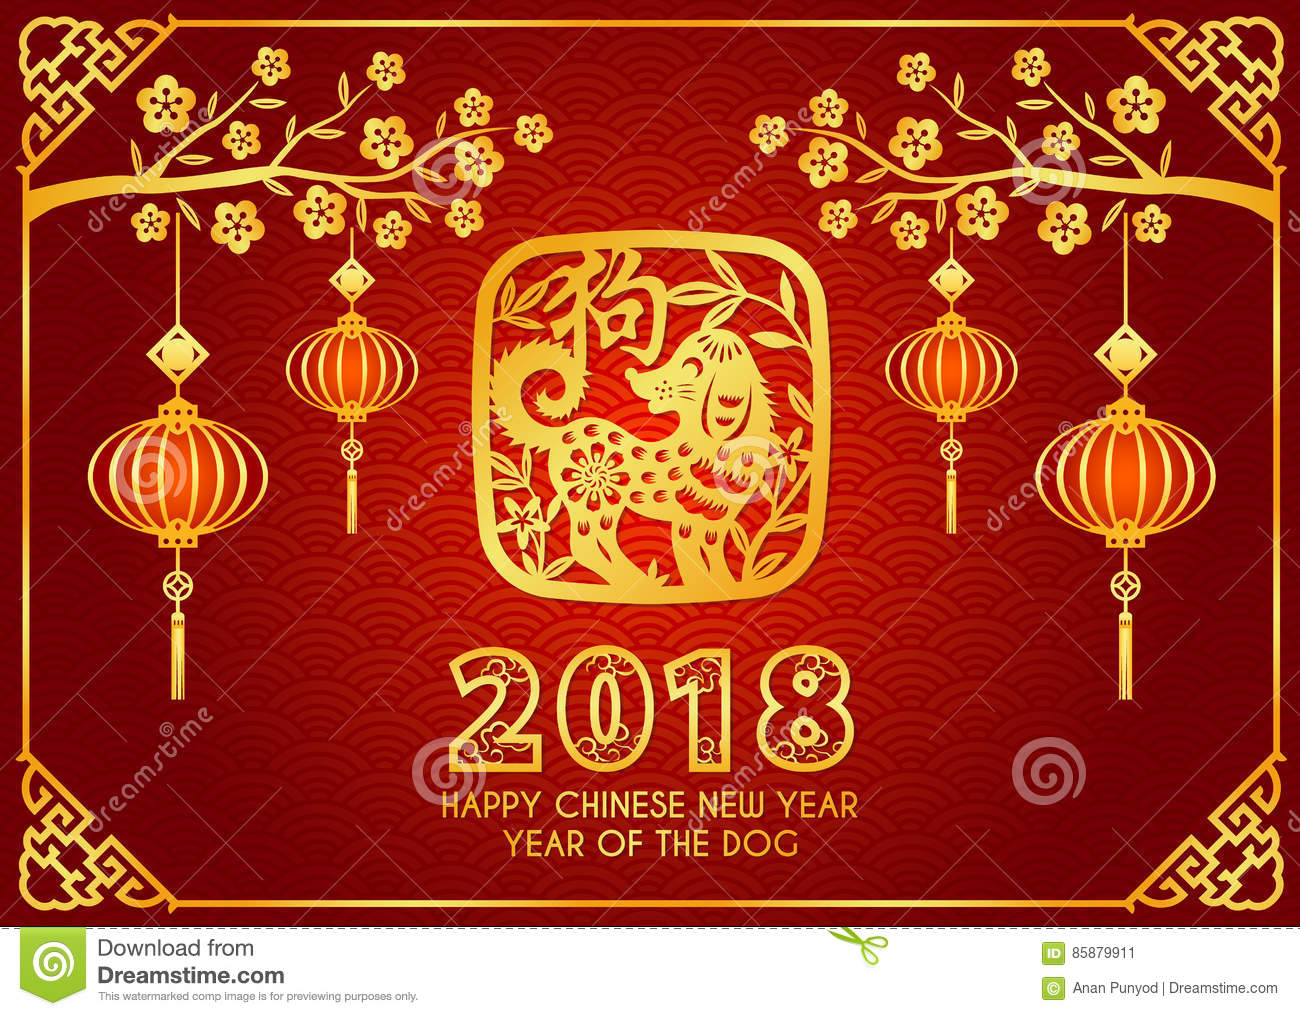 Happy Chinese New Year 2018 Card Is Lanterns Hang On Branches , Paper Cut Dog In Frame Vector ...